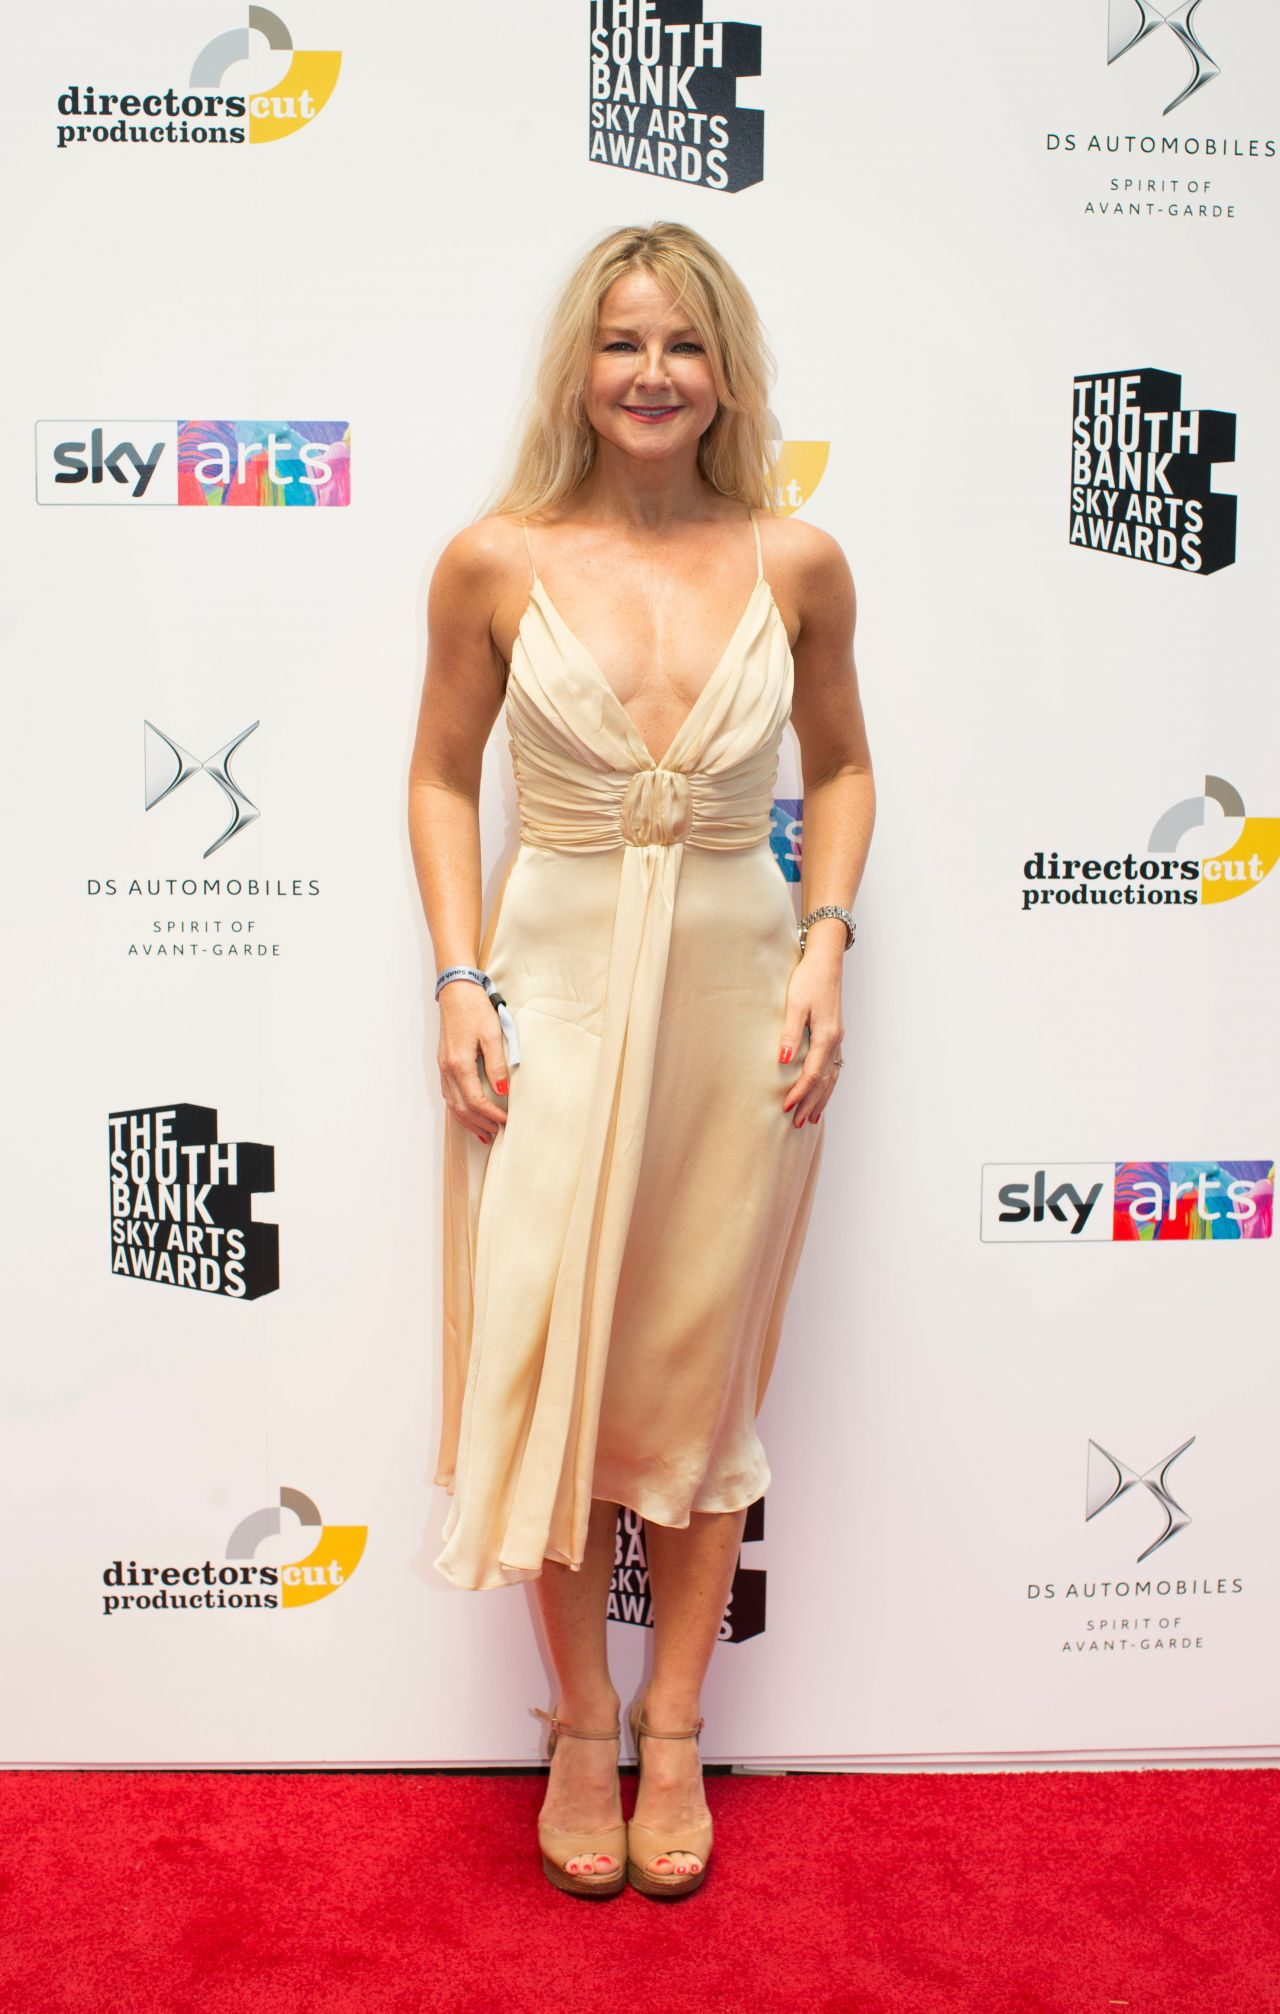 Discussion on this topic: Brooke Bloom, sarah-hadland/